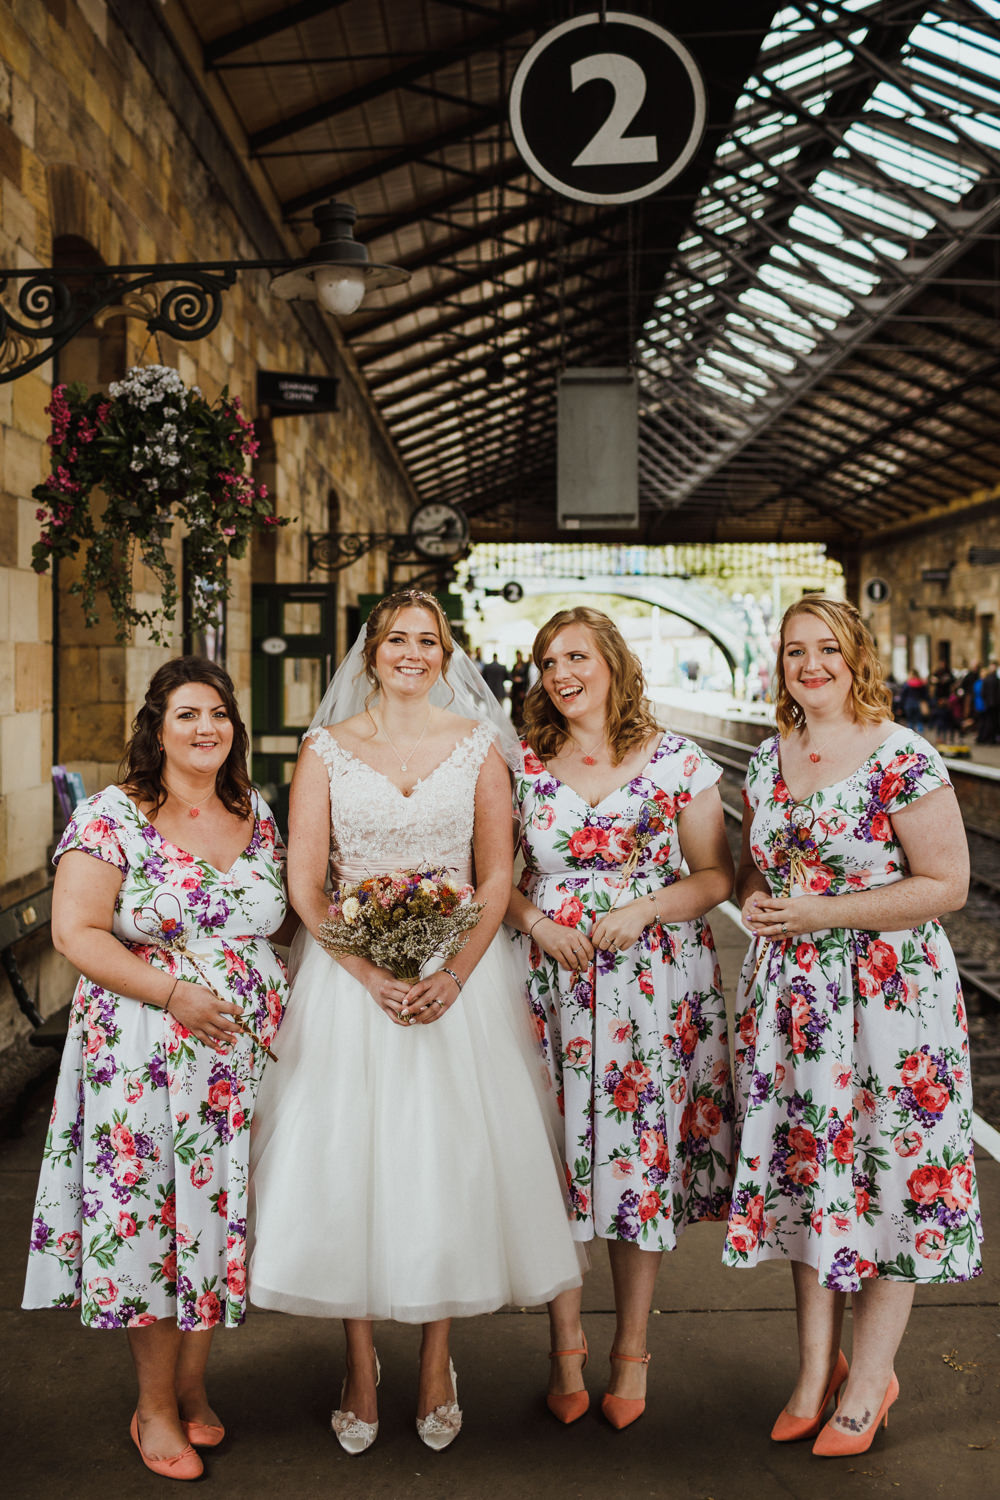 Floral Bridesmaid Dresses Short Bridesmaids Train Station Harry Potter Wedding Photography34